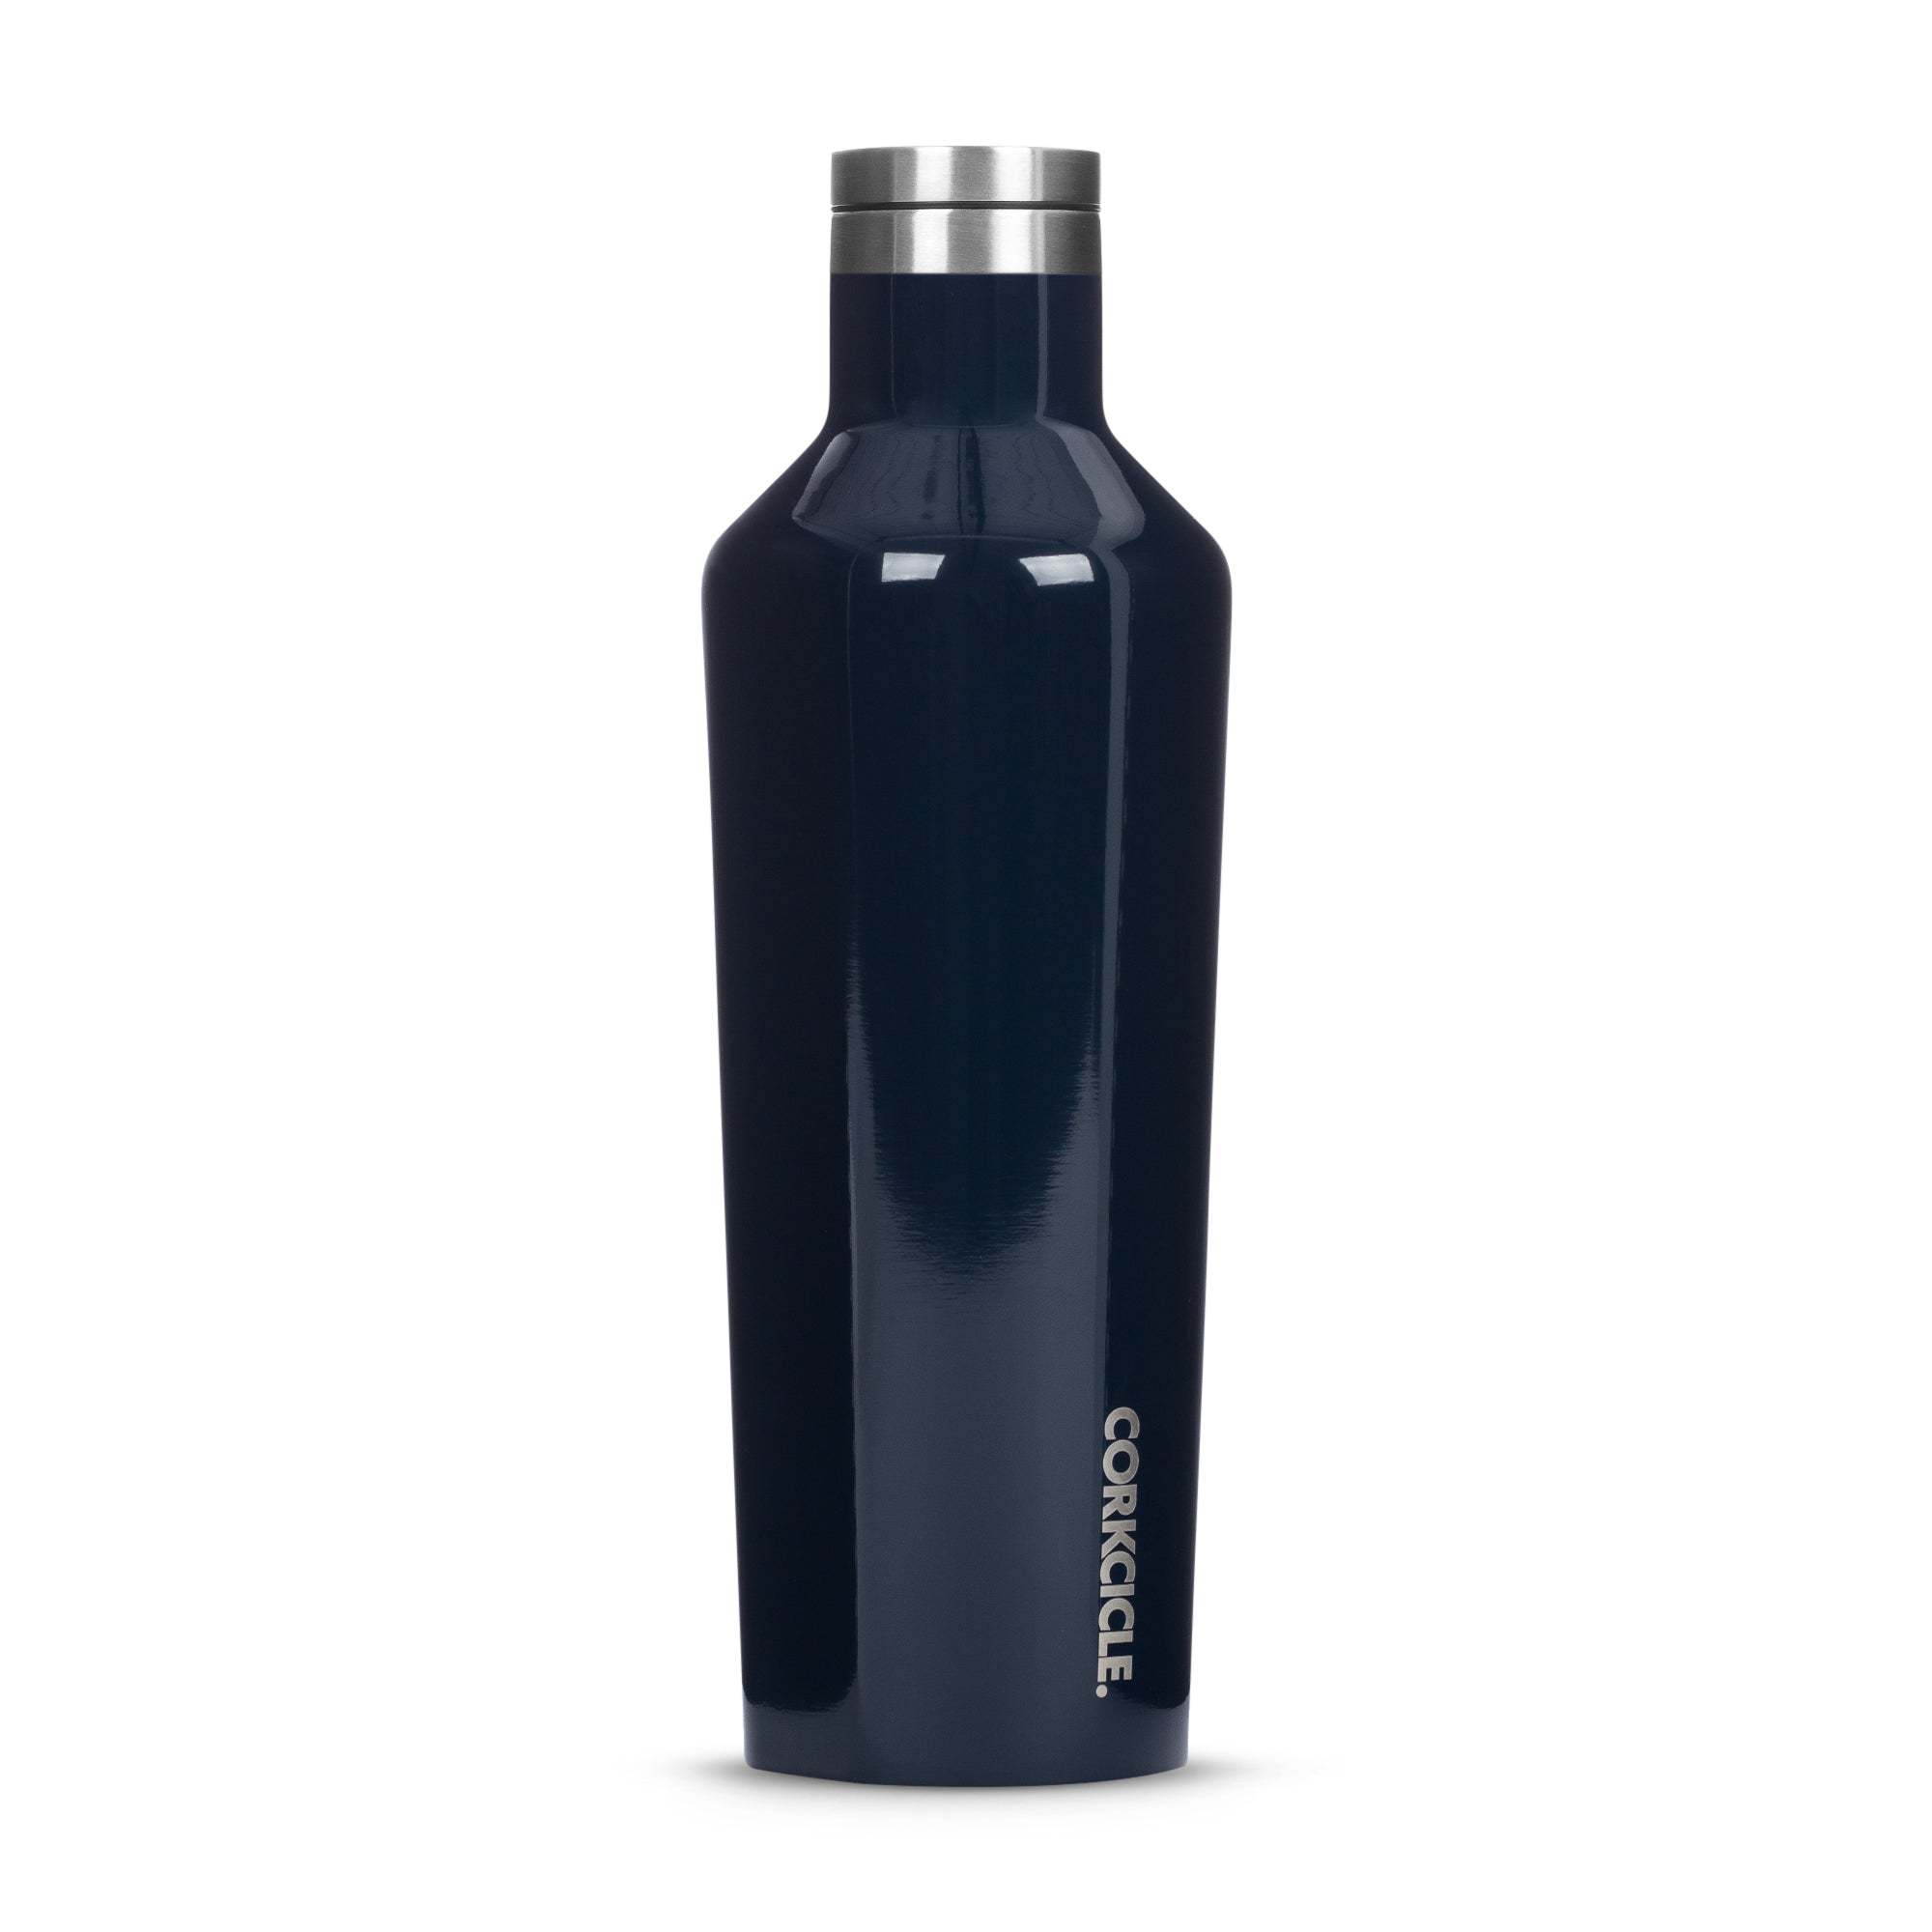 Corkcicle Canteen Gloss Navy 16oz